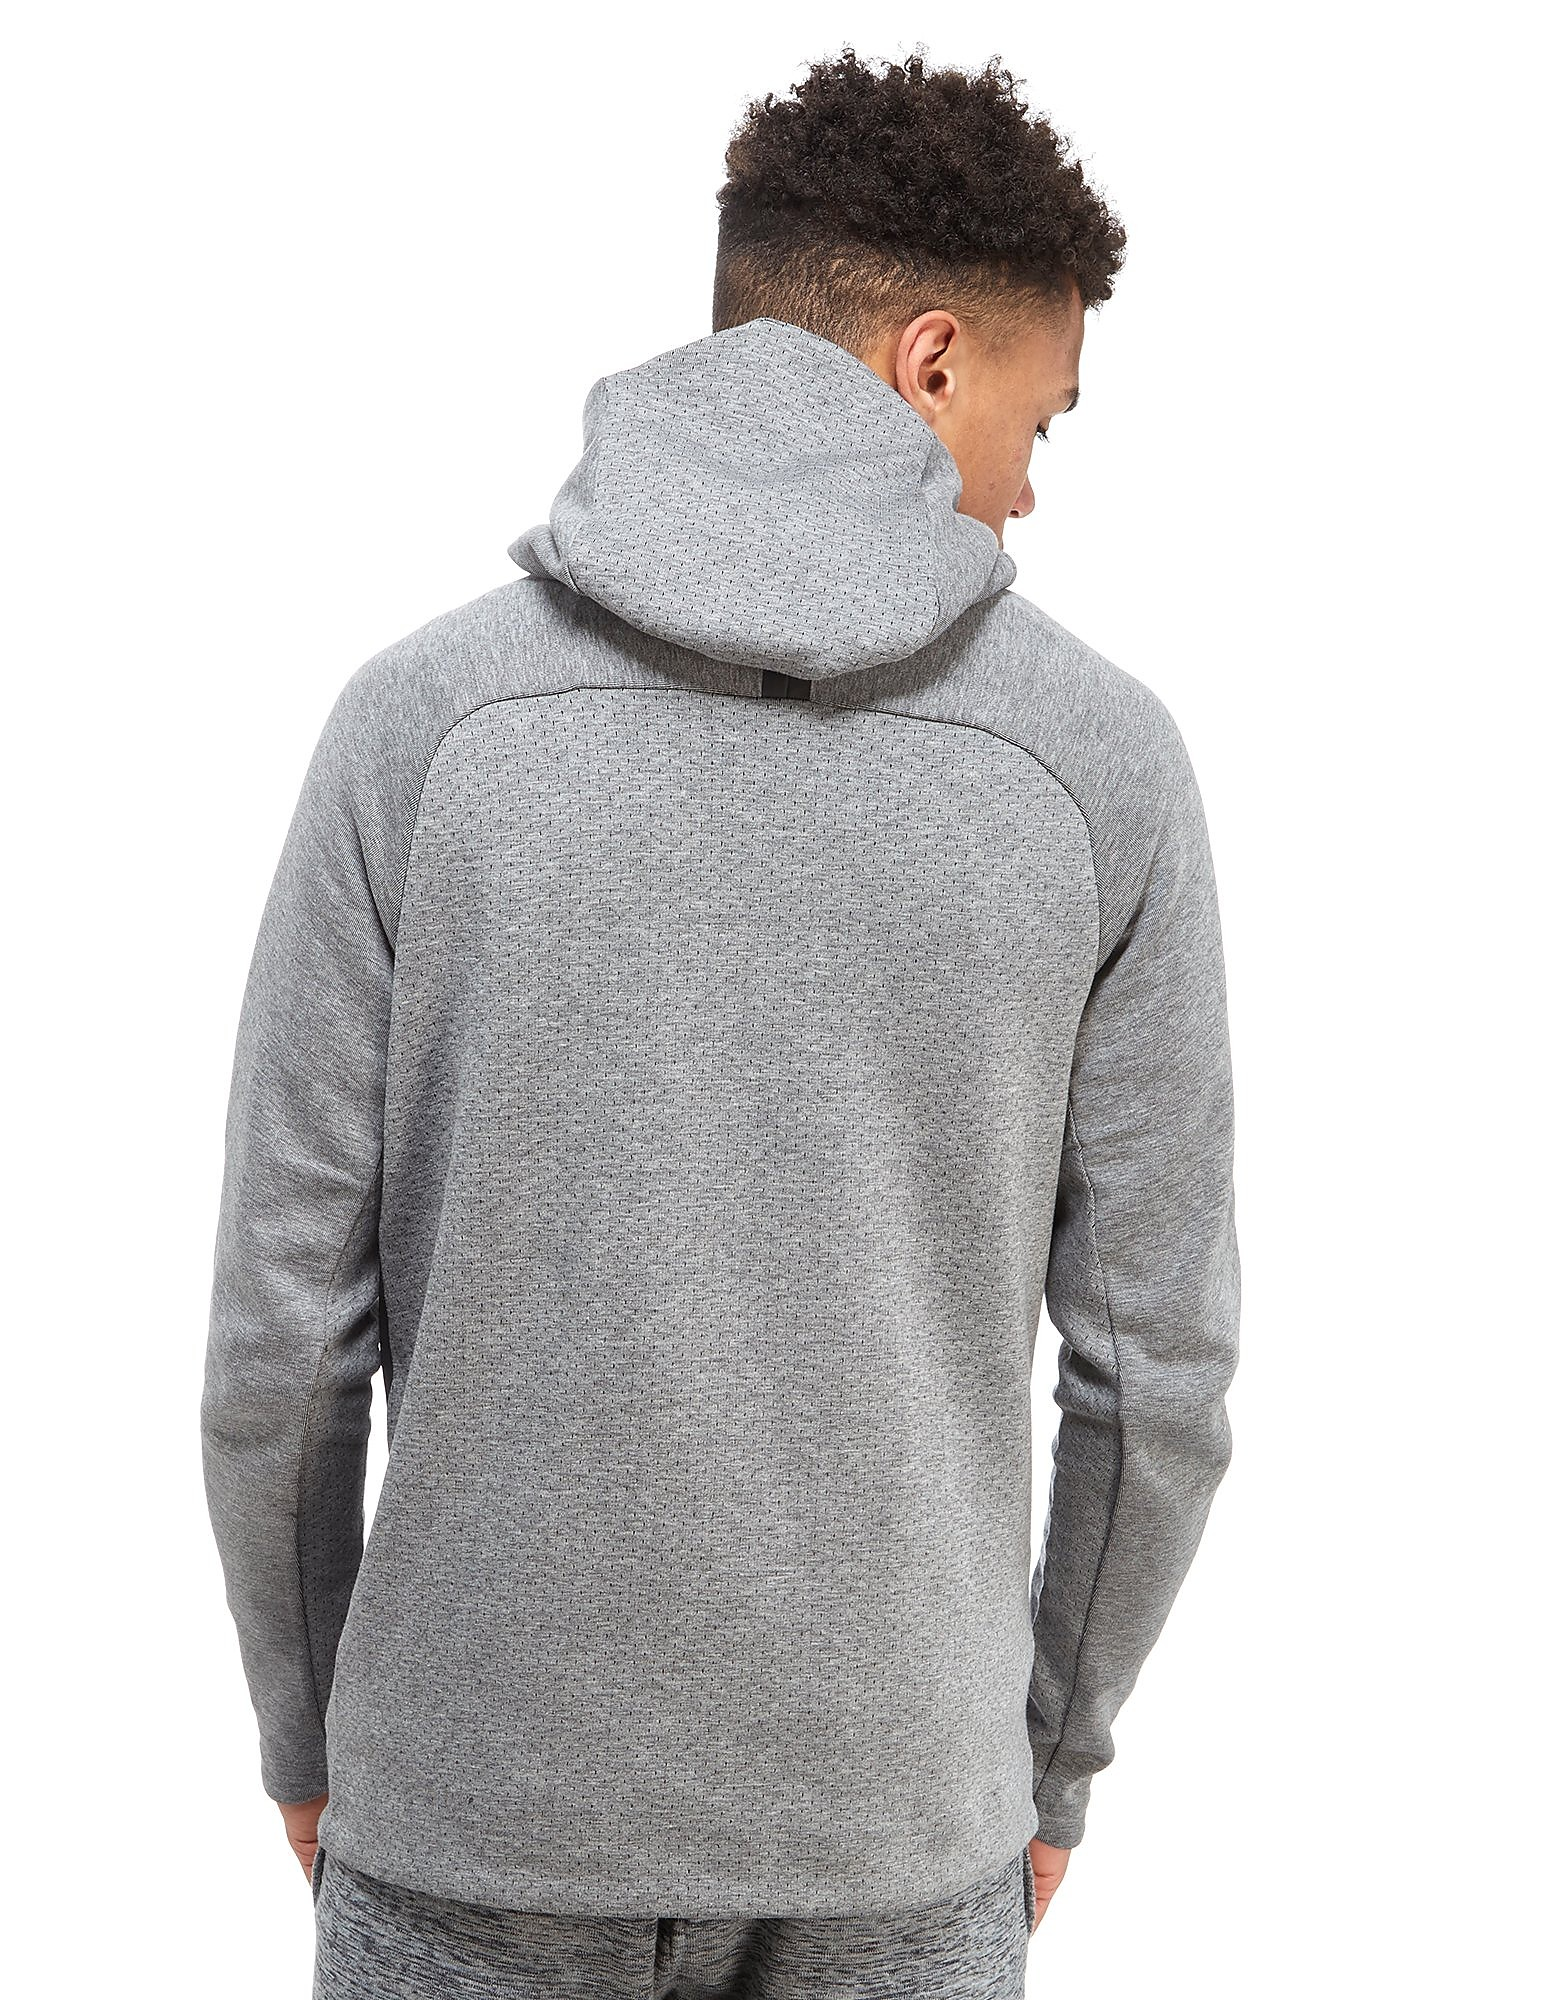 Nike Sweat Capuche Tech Fleece Mesh Overhead